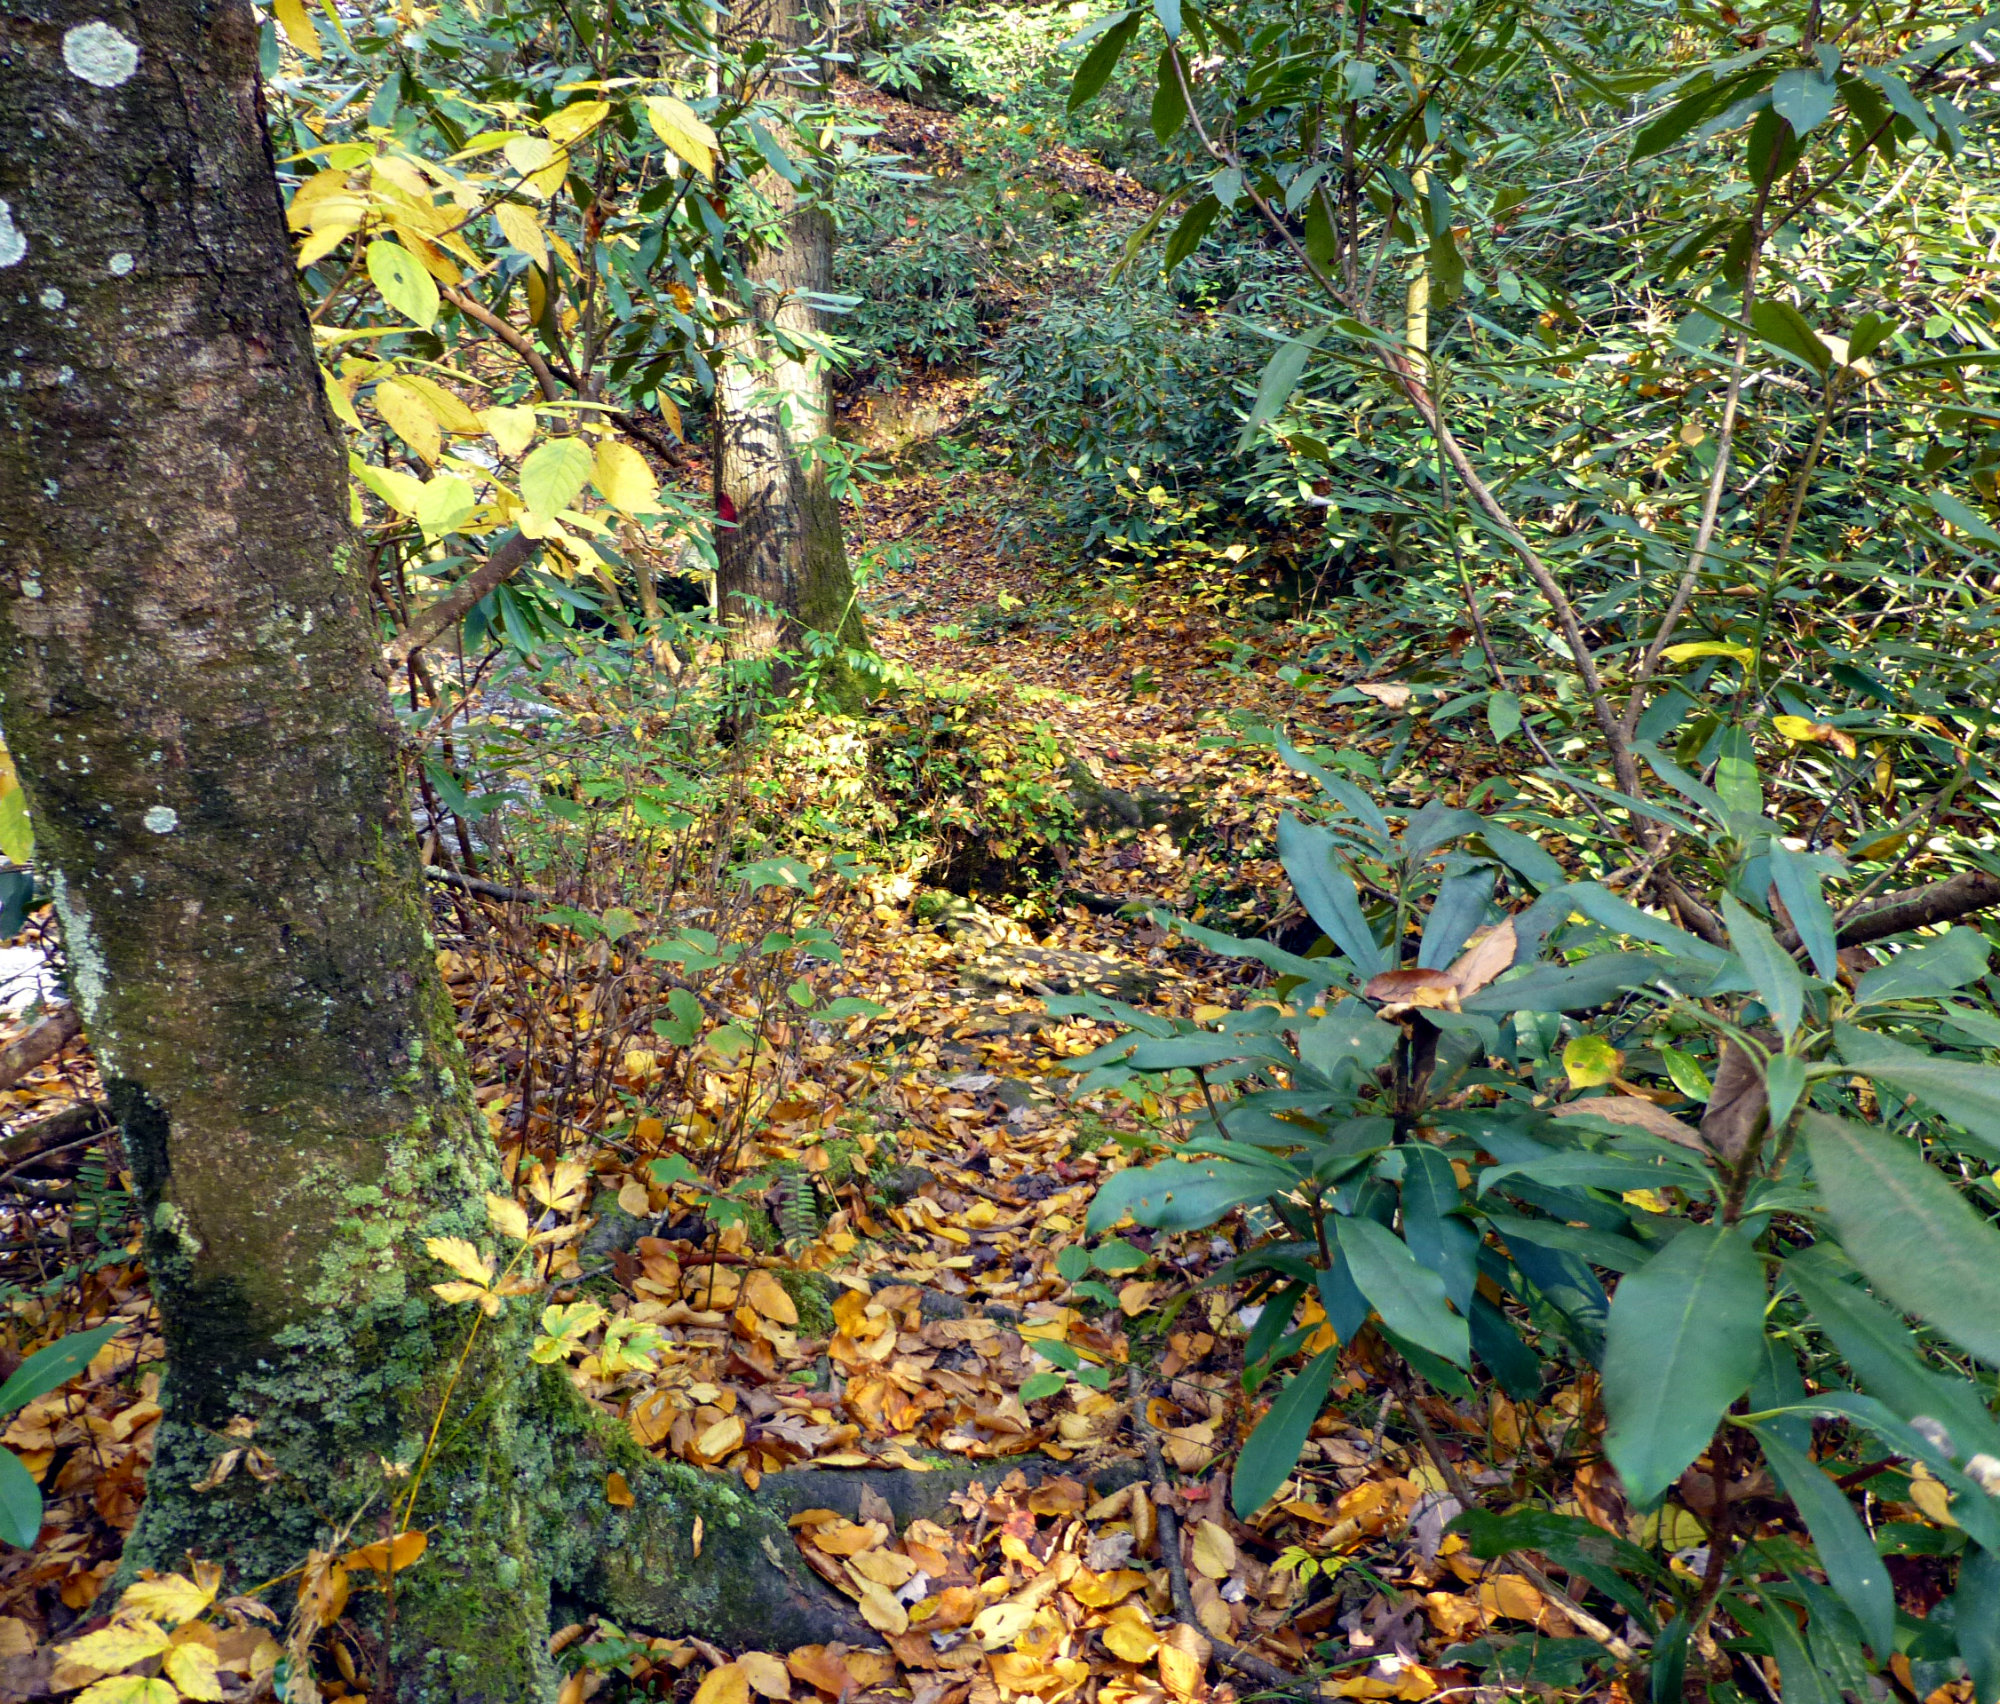 Leaf covered trail through the woods with a tree trunk on the left of the photo and large shrubs